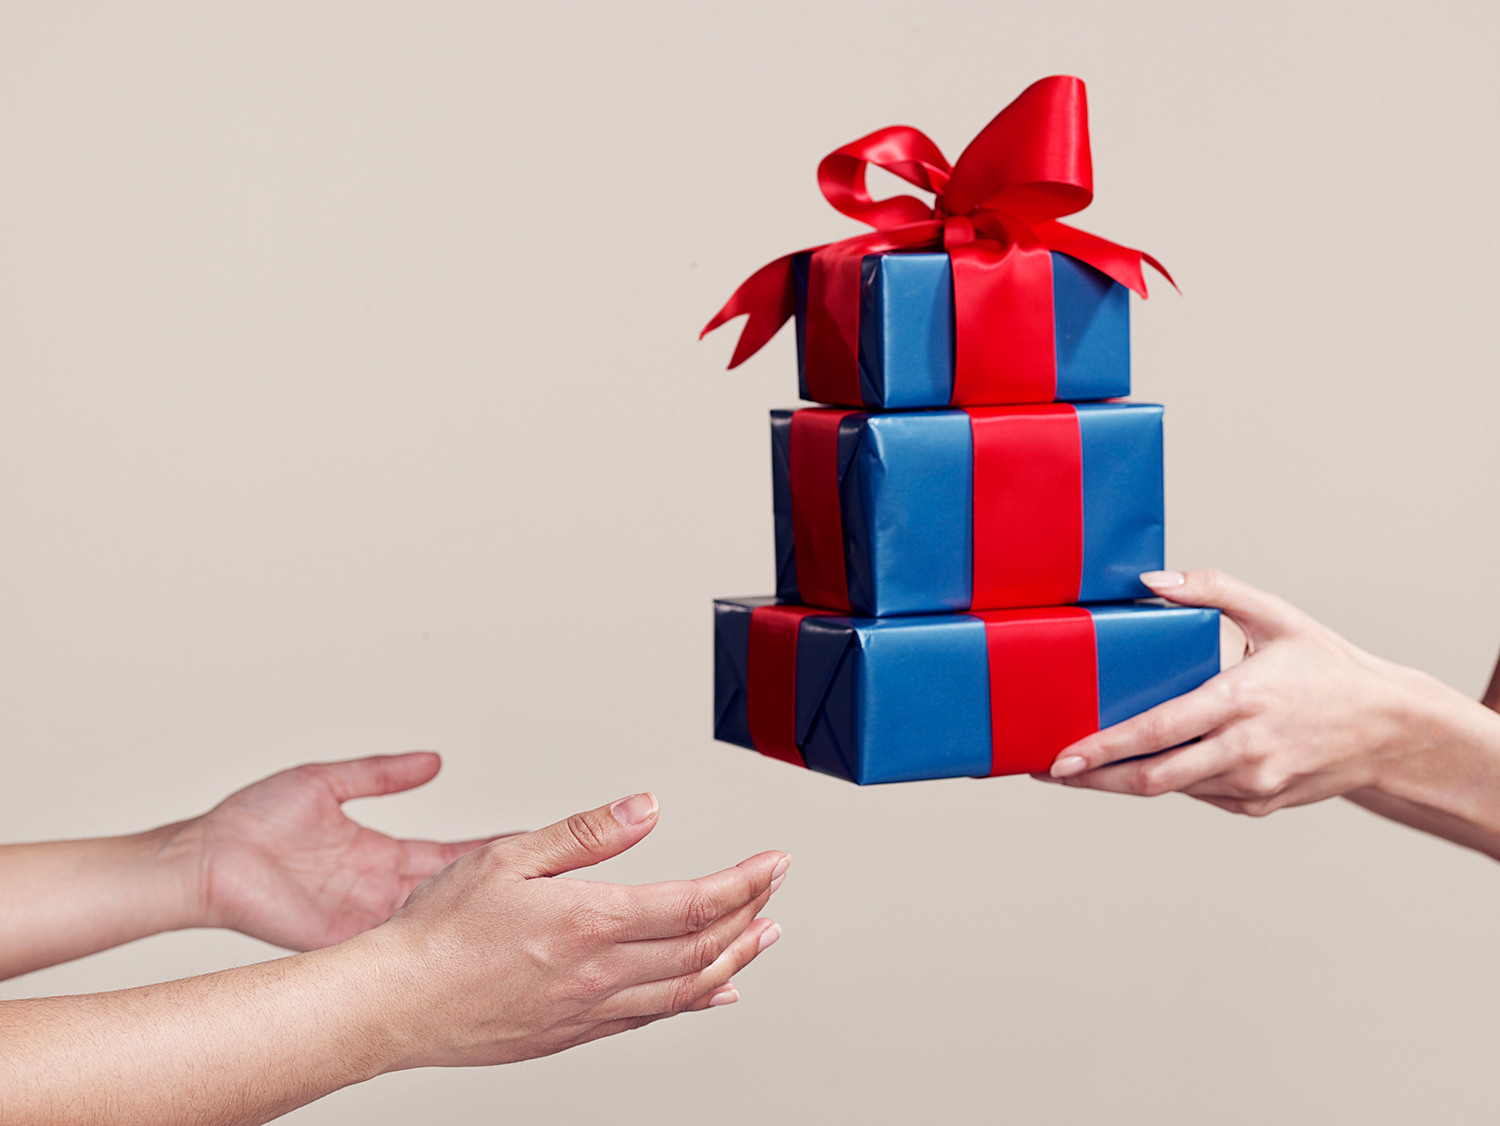 gift-receiving-manners